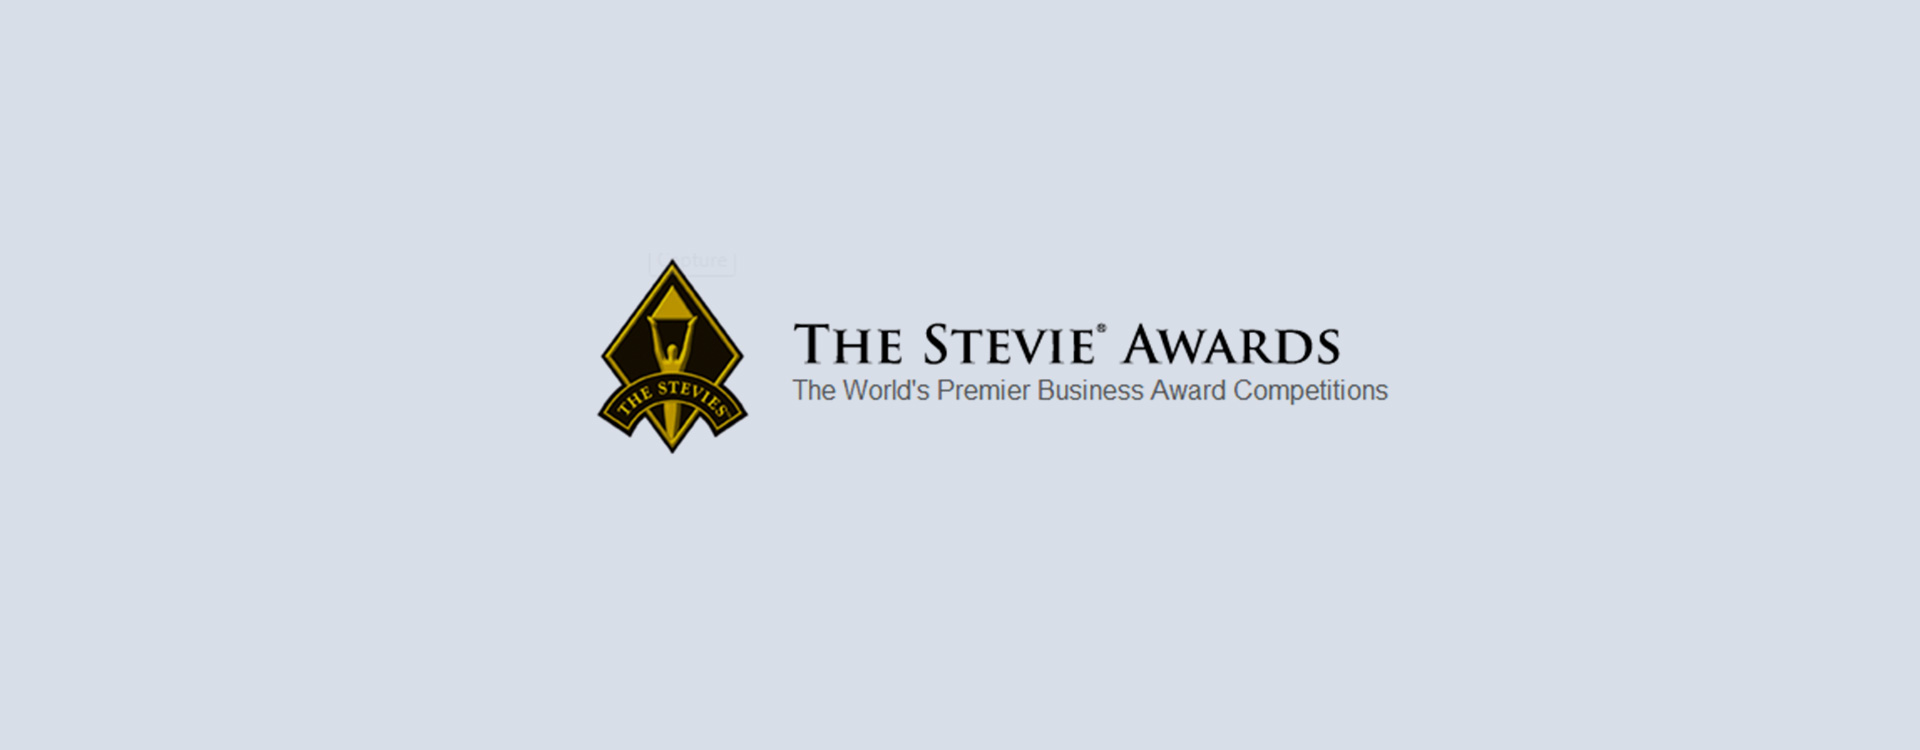 The Stevie Awards logo